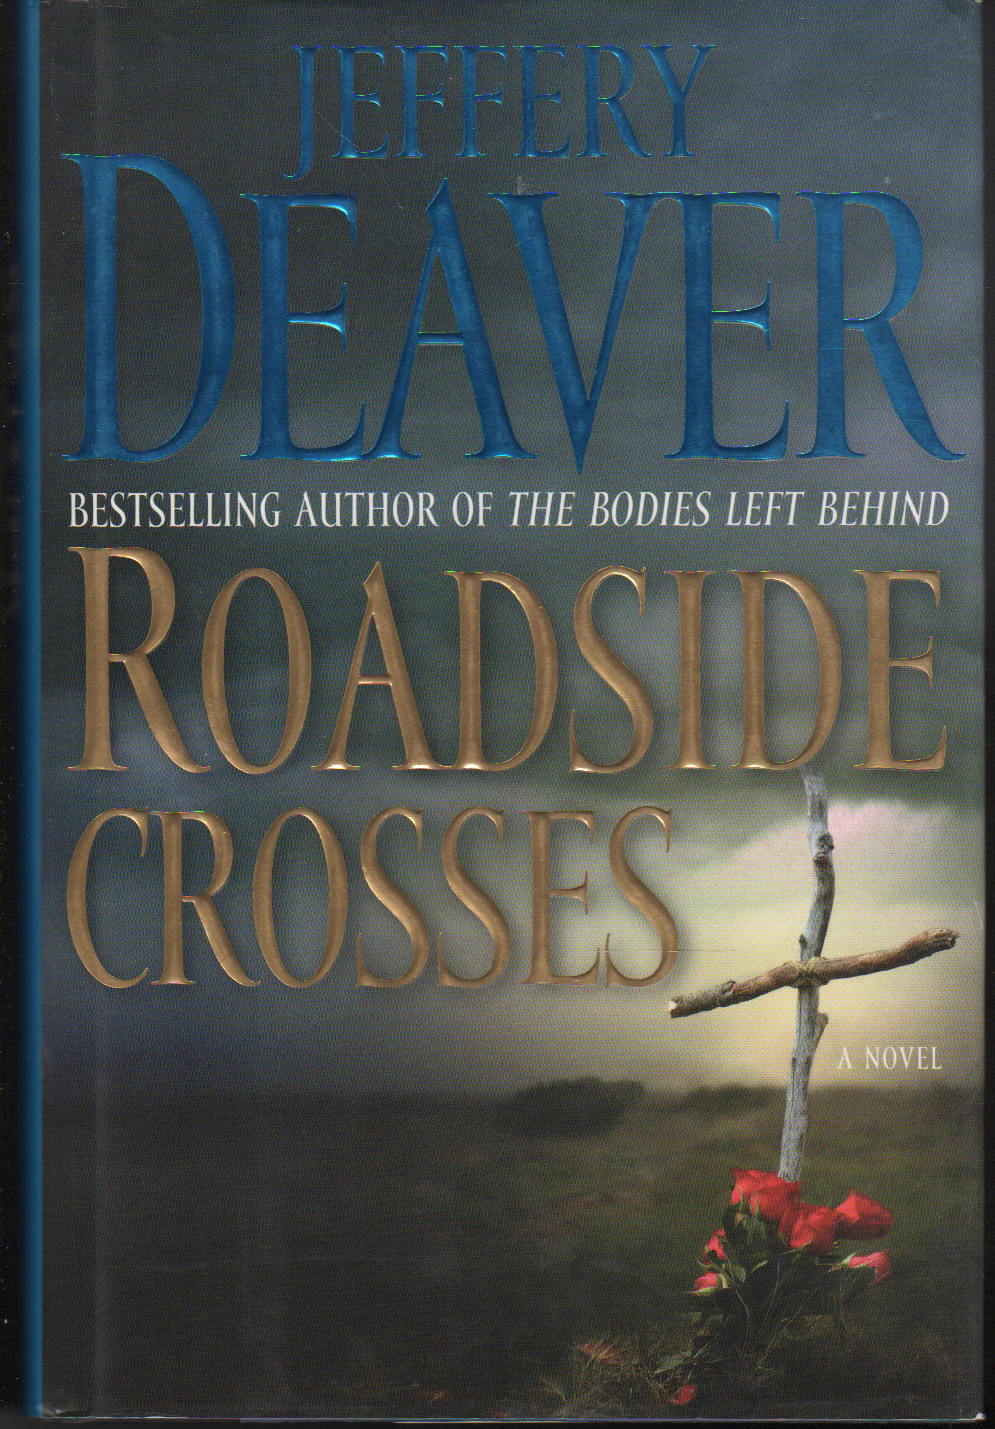 DEAVER, JEFFERY. - ROADSIDE CROSSES.